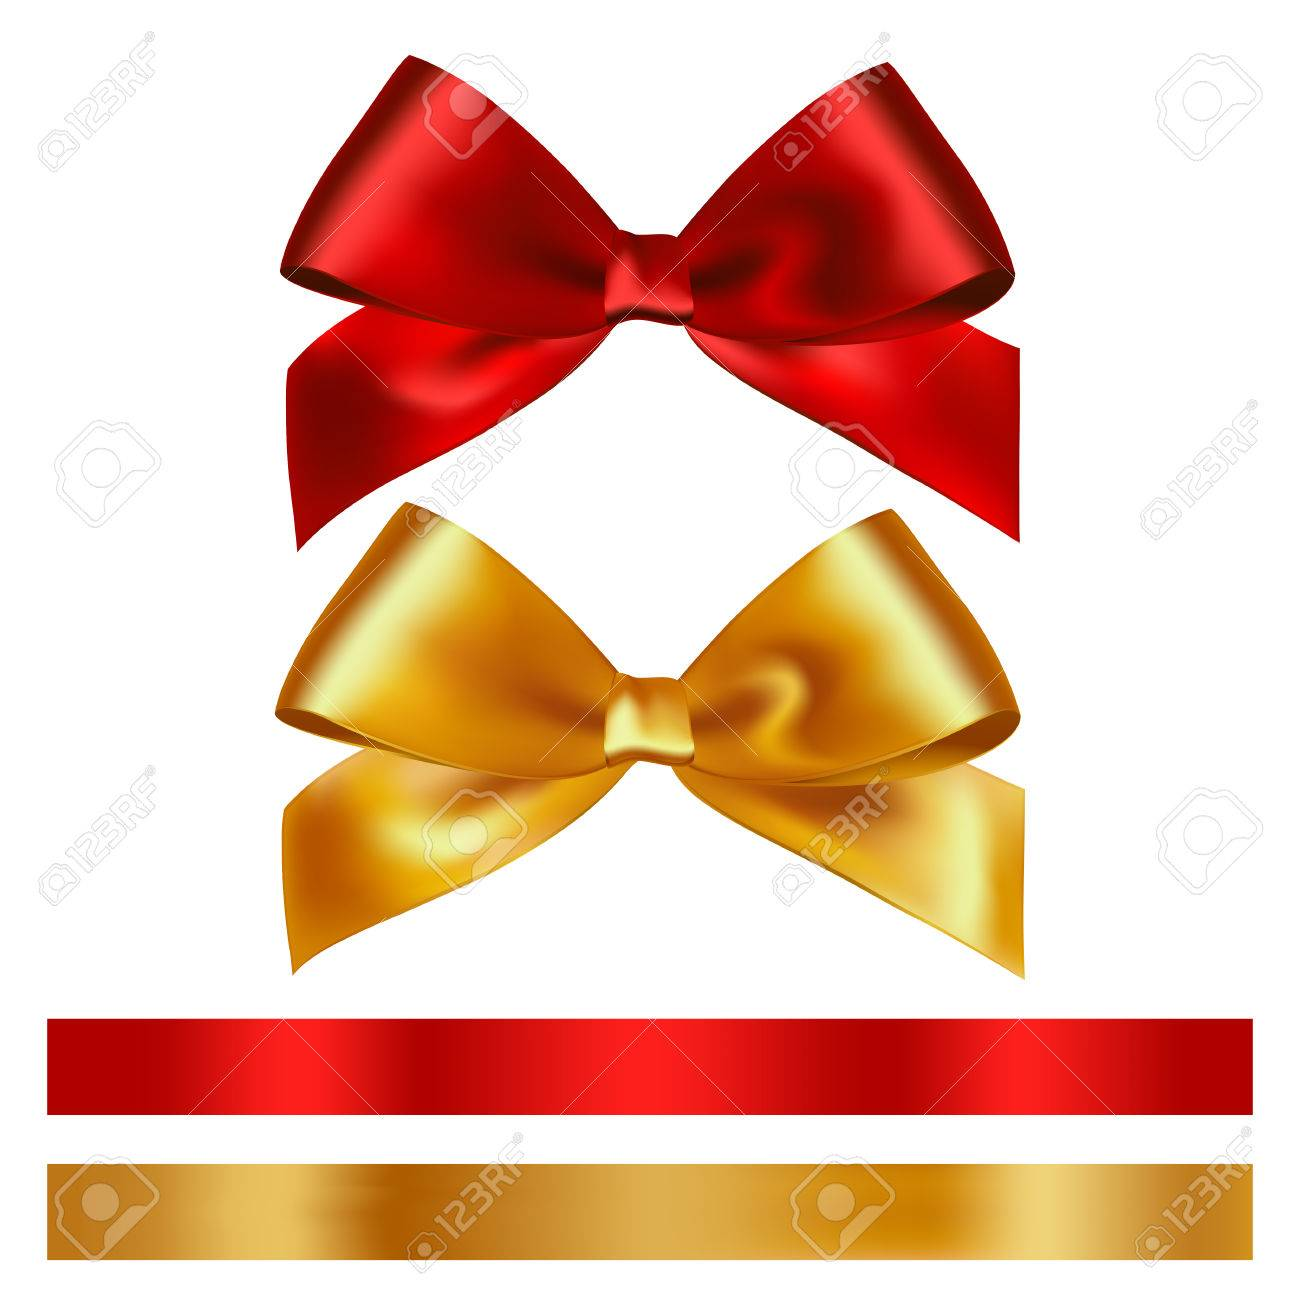 Shiny red and gold satin ribbon on white background. Vector - 54436530